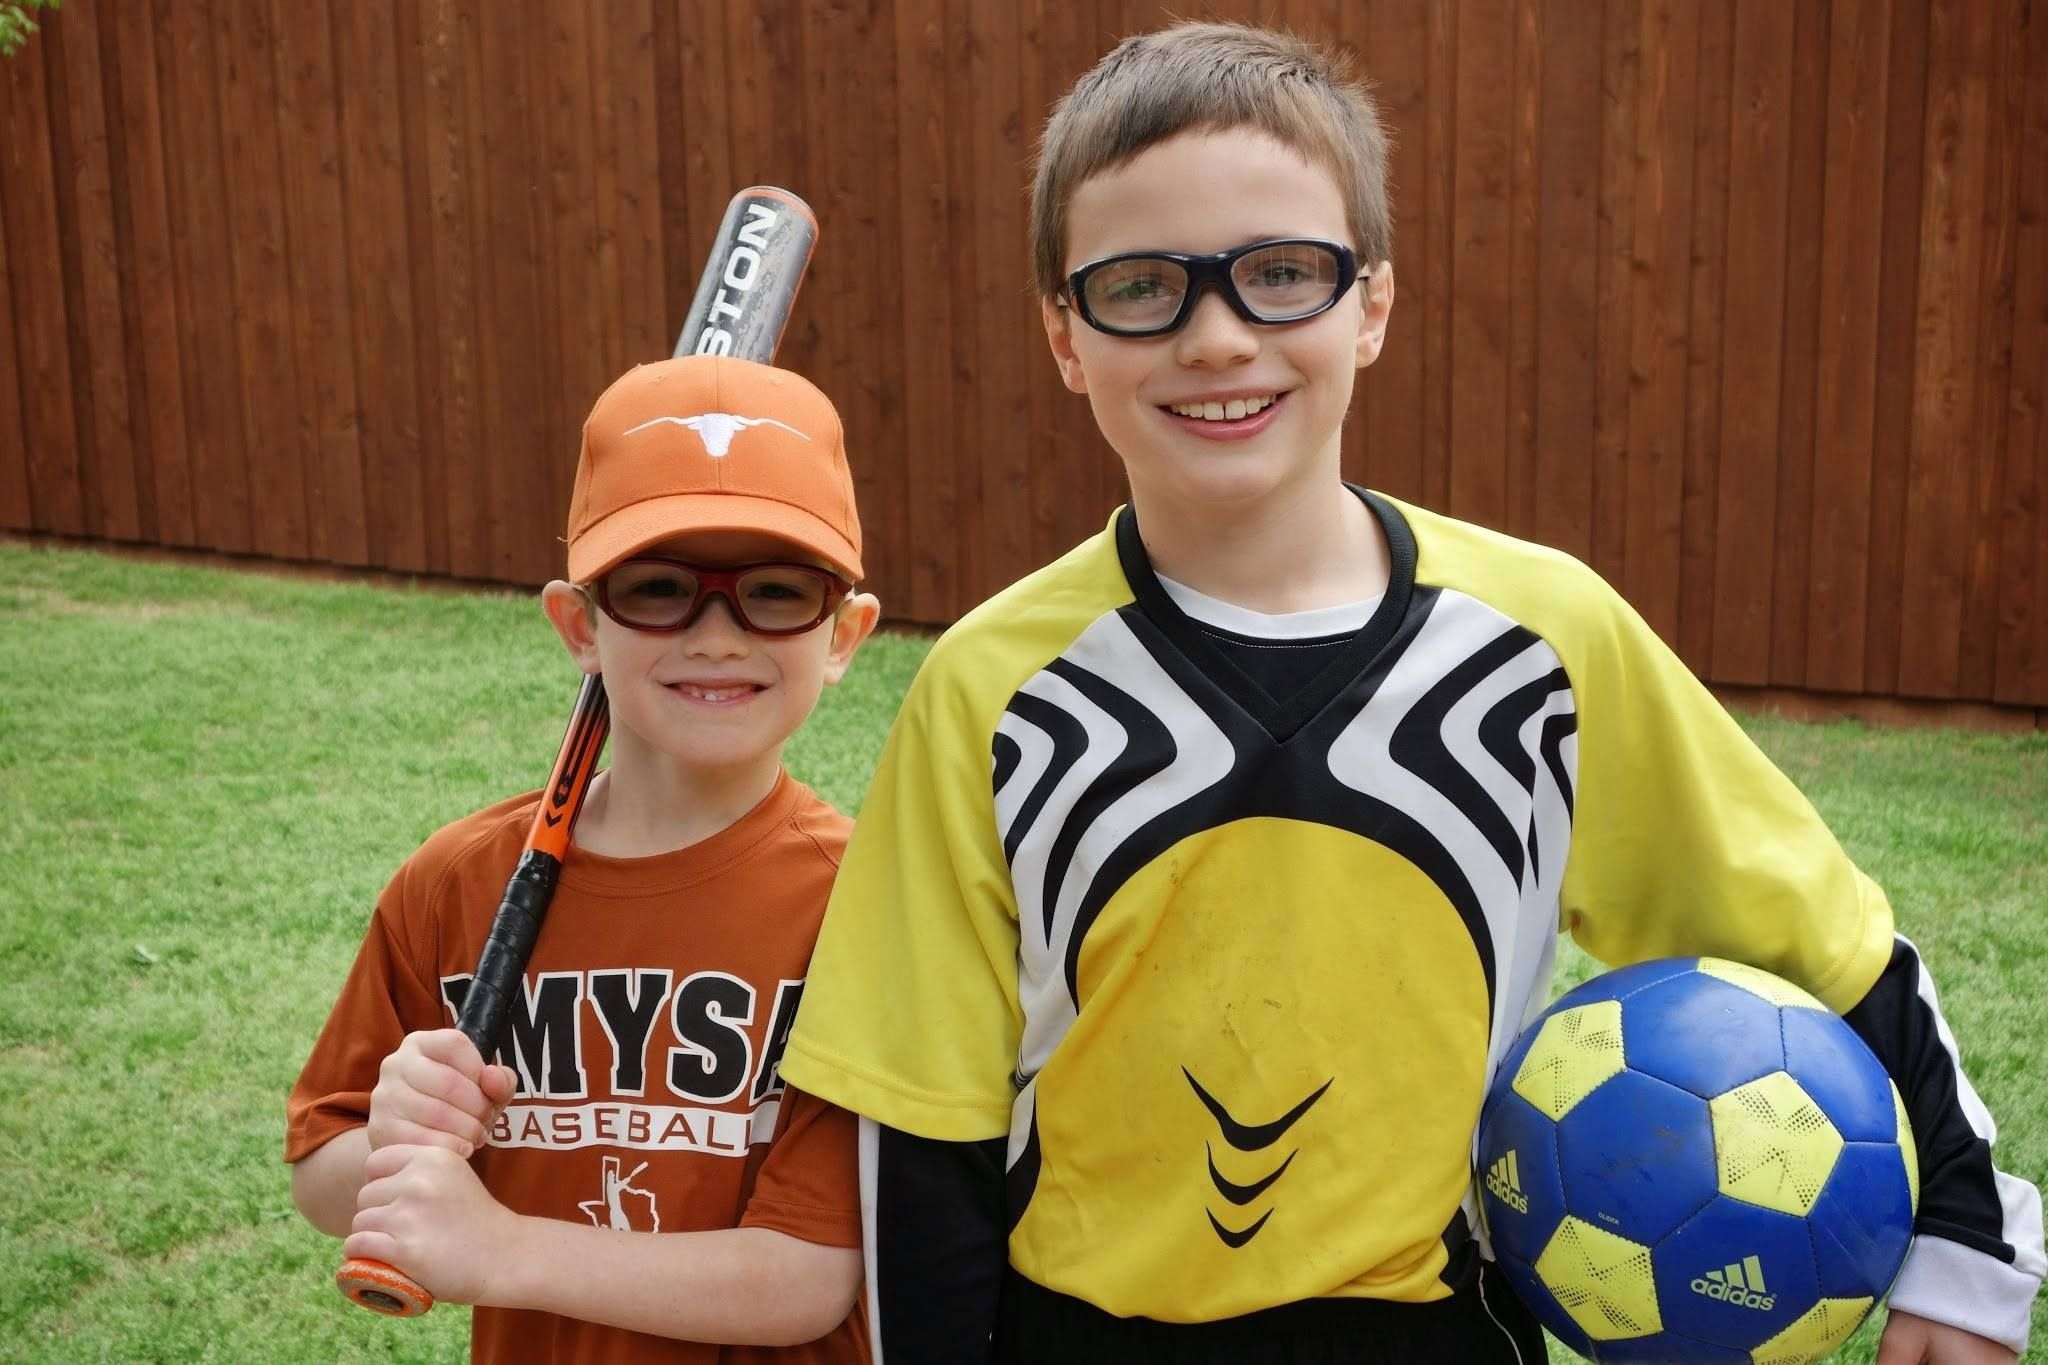 Soccer and baseball! Play hard & safe with Rec Specs! www.libertysport.com